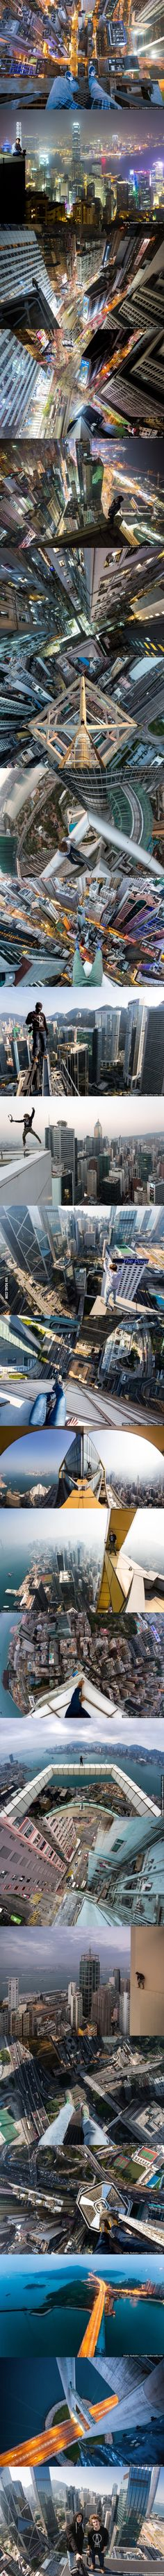 A few pictures of Hong Kong, taken by two Russians guys